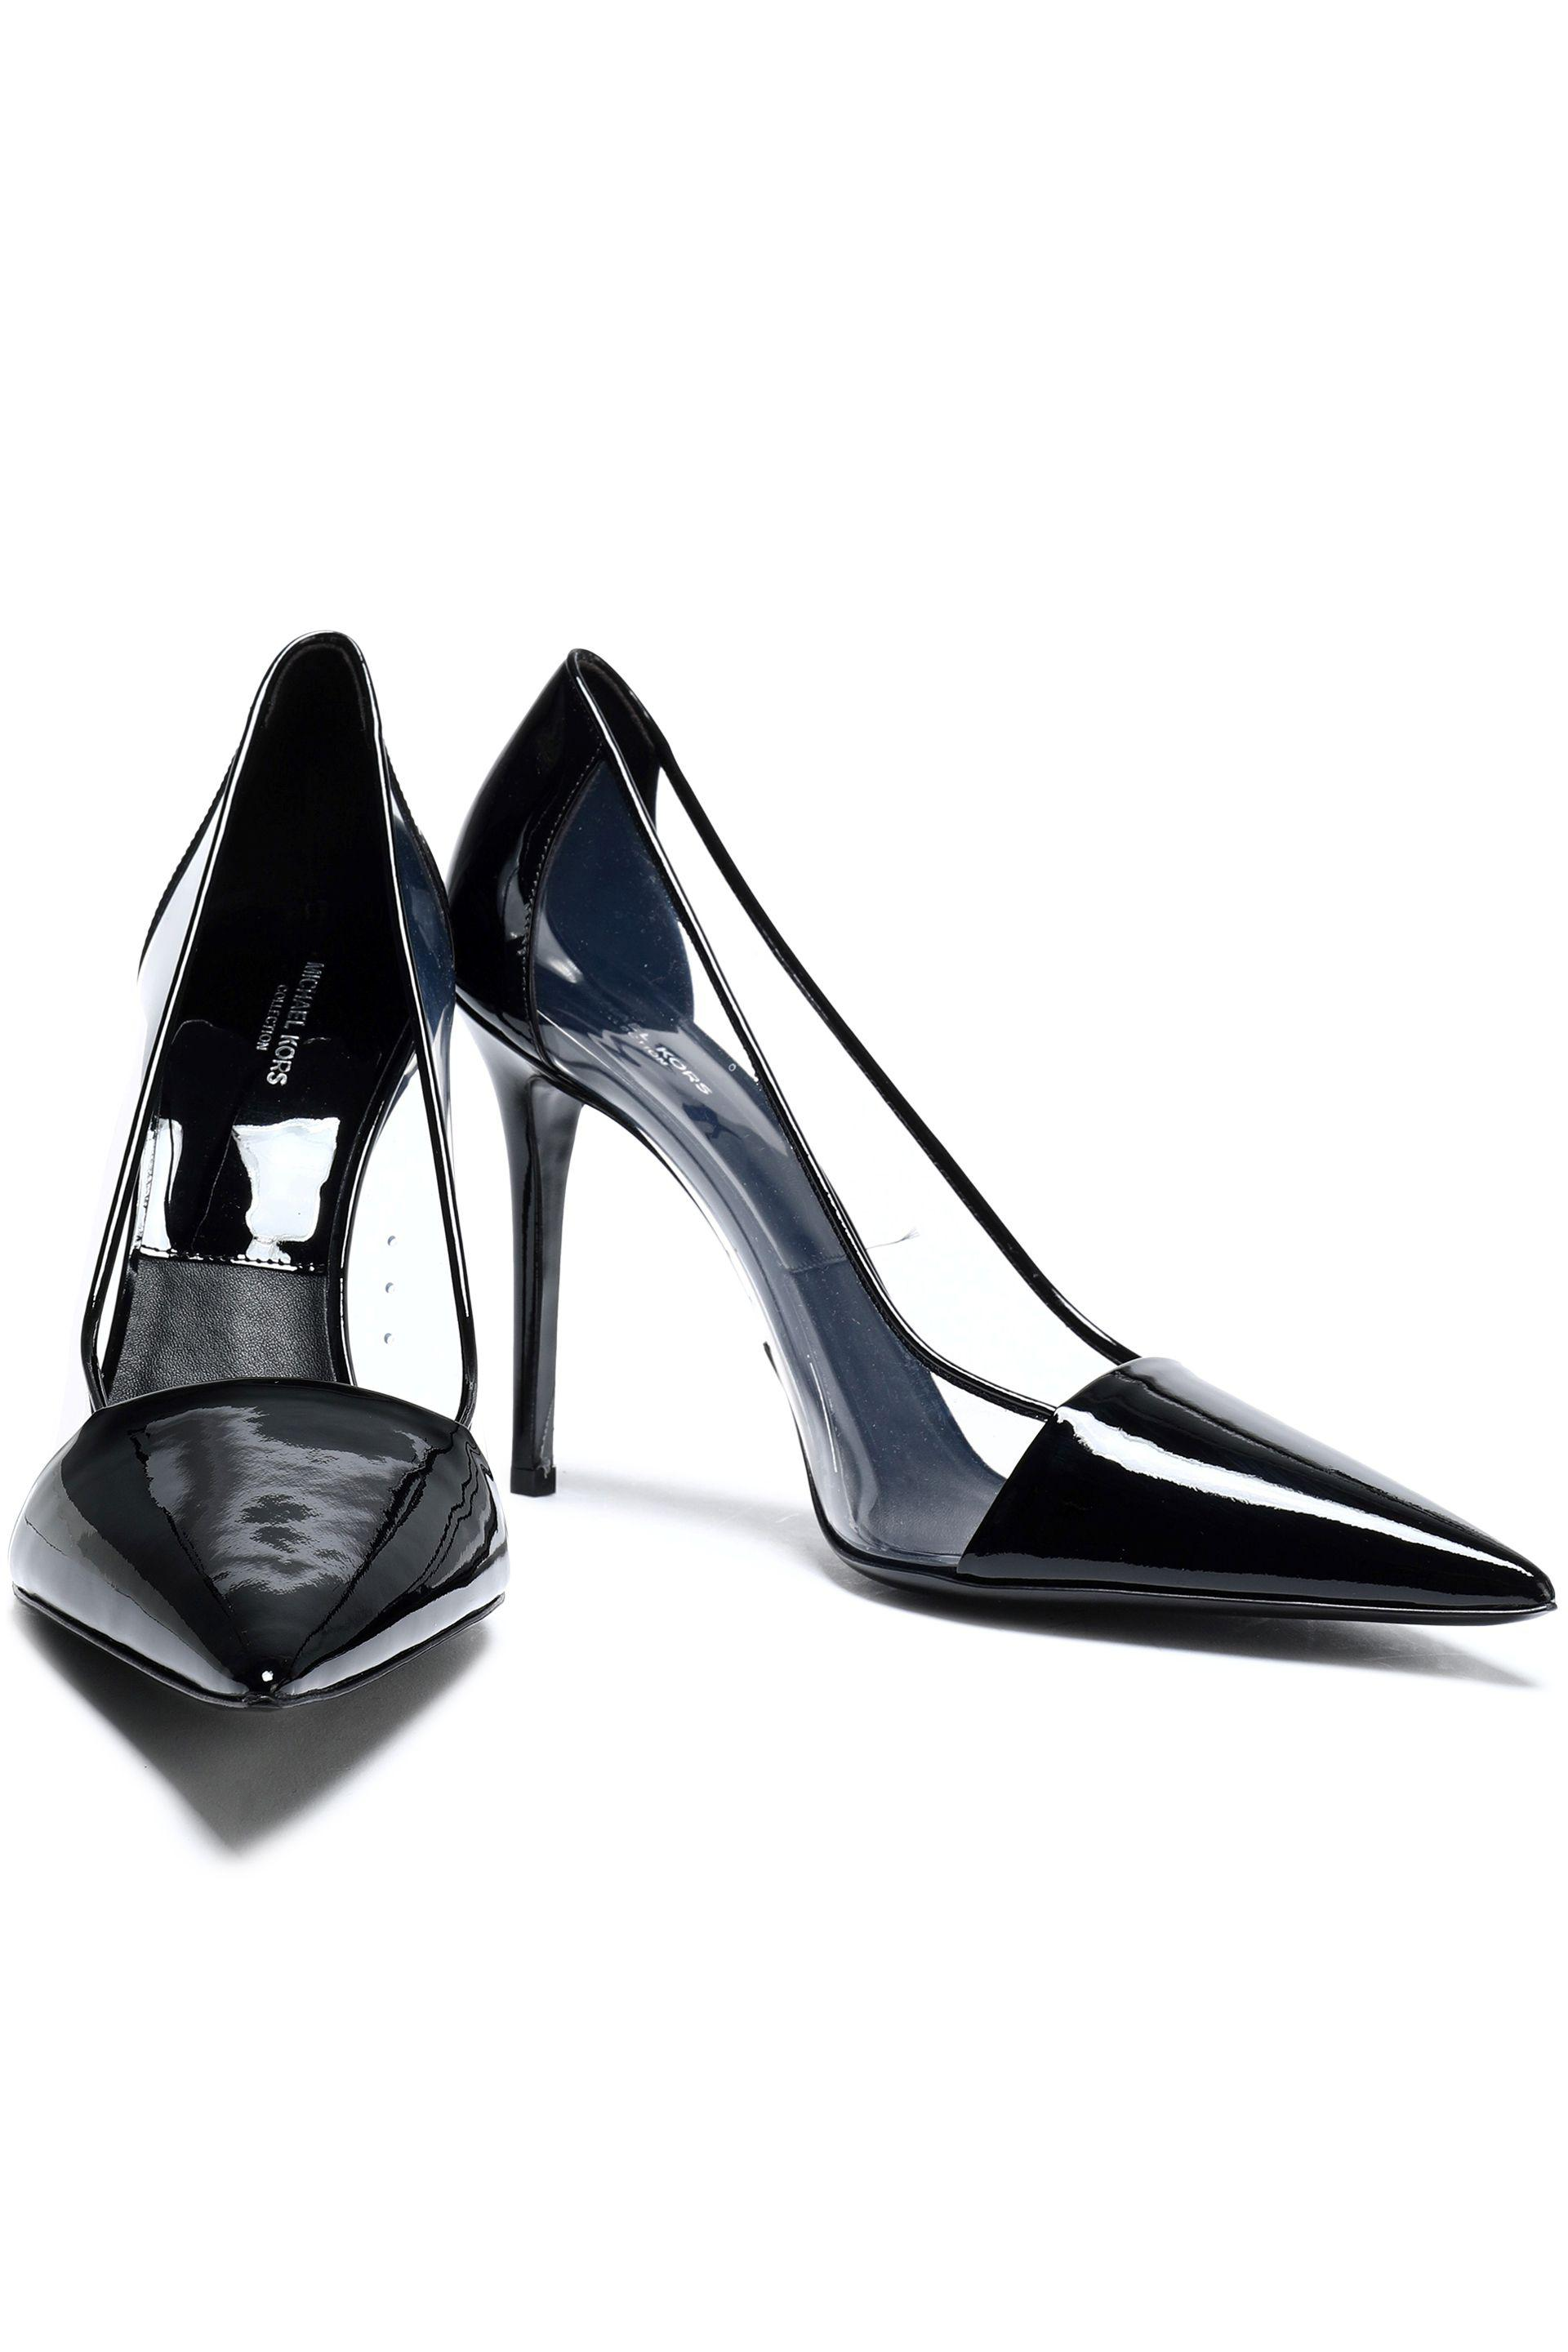 88a8bf10e31f Michael Kors Pvc-paneled Patent-leather Pumps in Black - Lyst